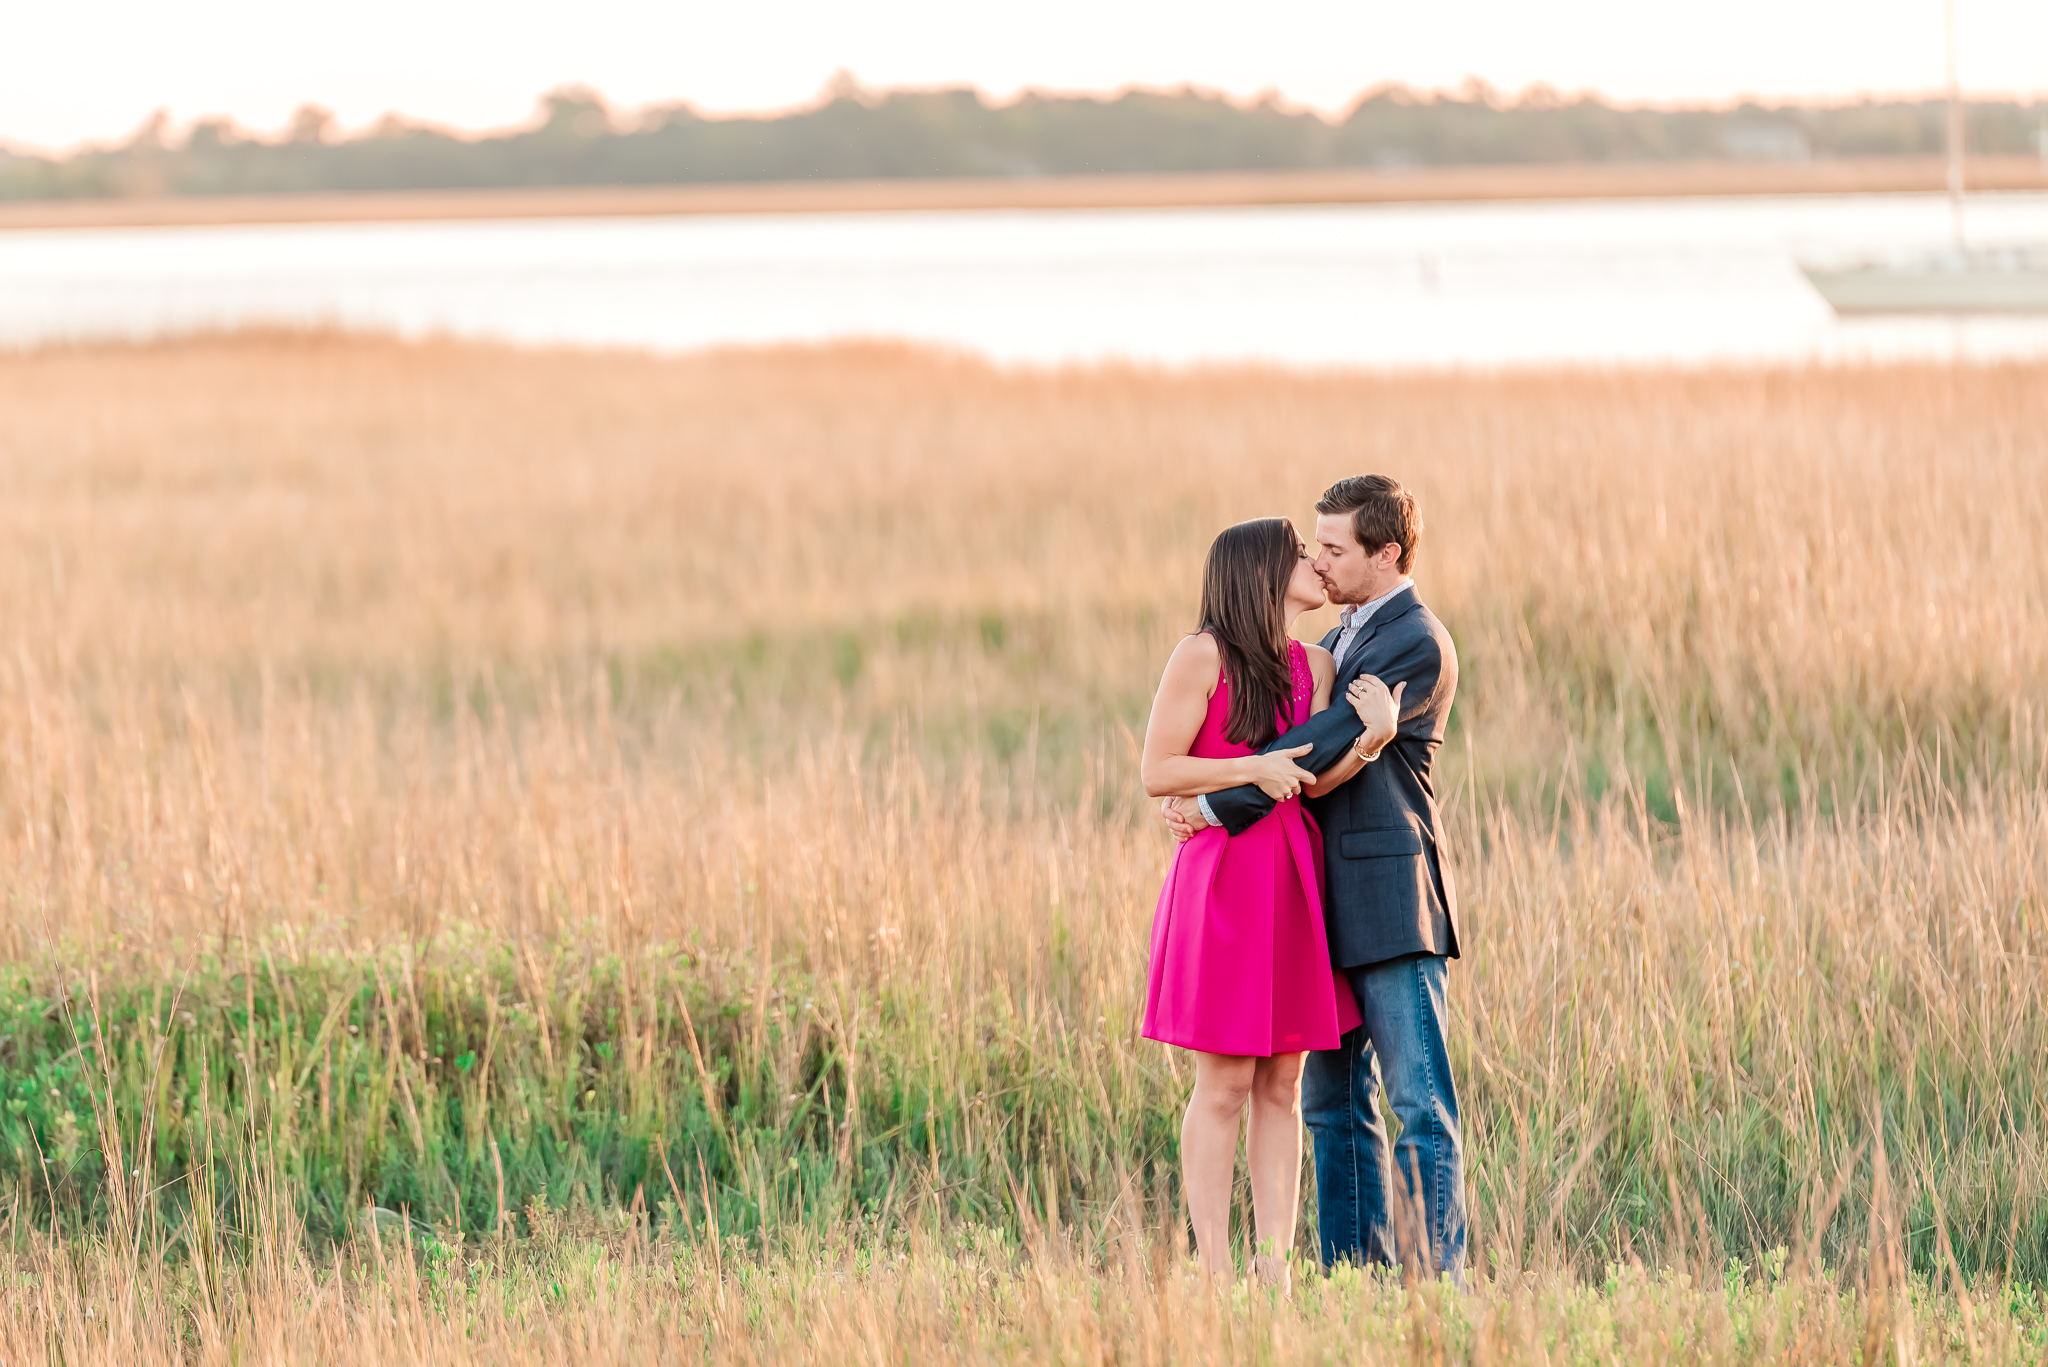 Natural, romantic sunset engagement portrait photography in South Carolina, Charleston SC wedding Photographer